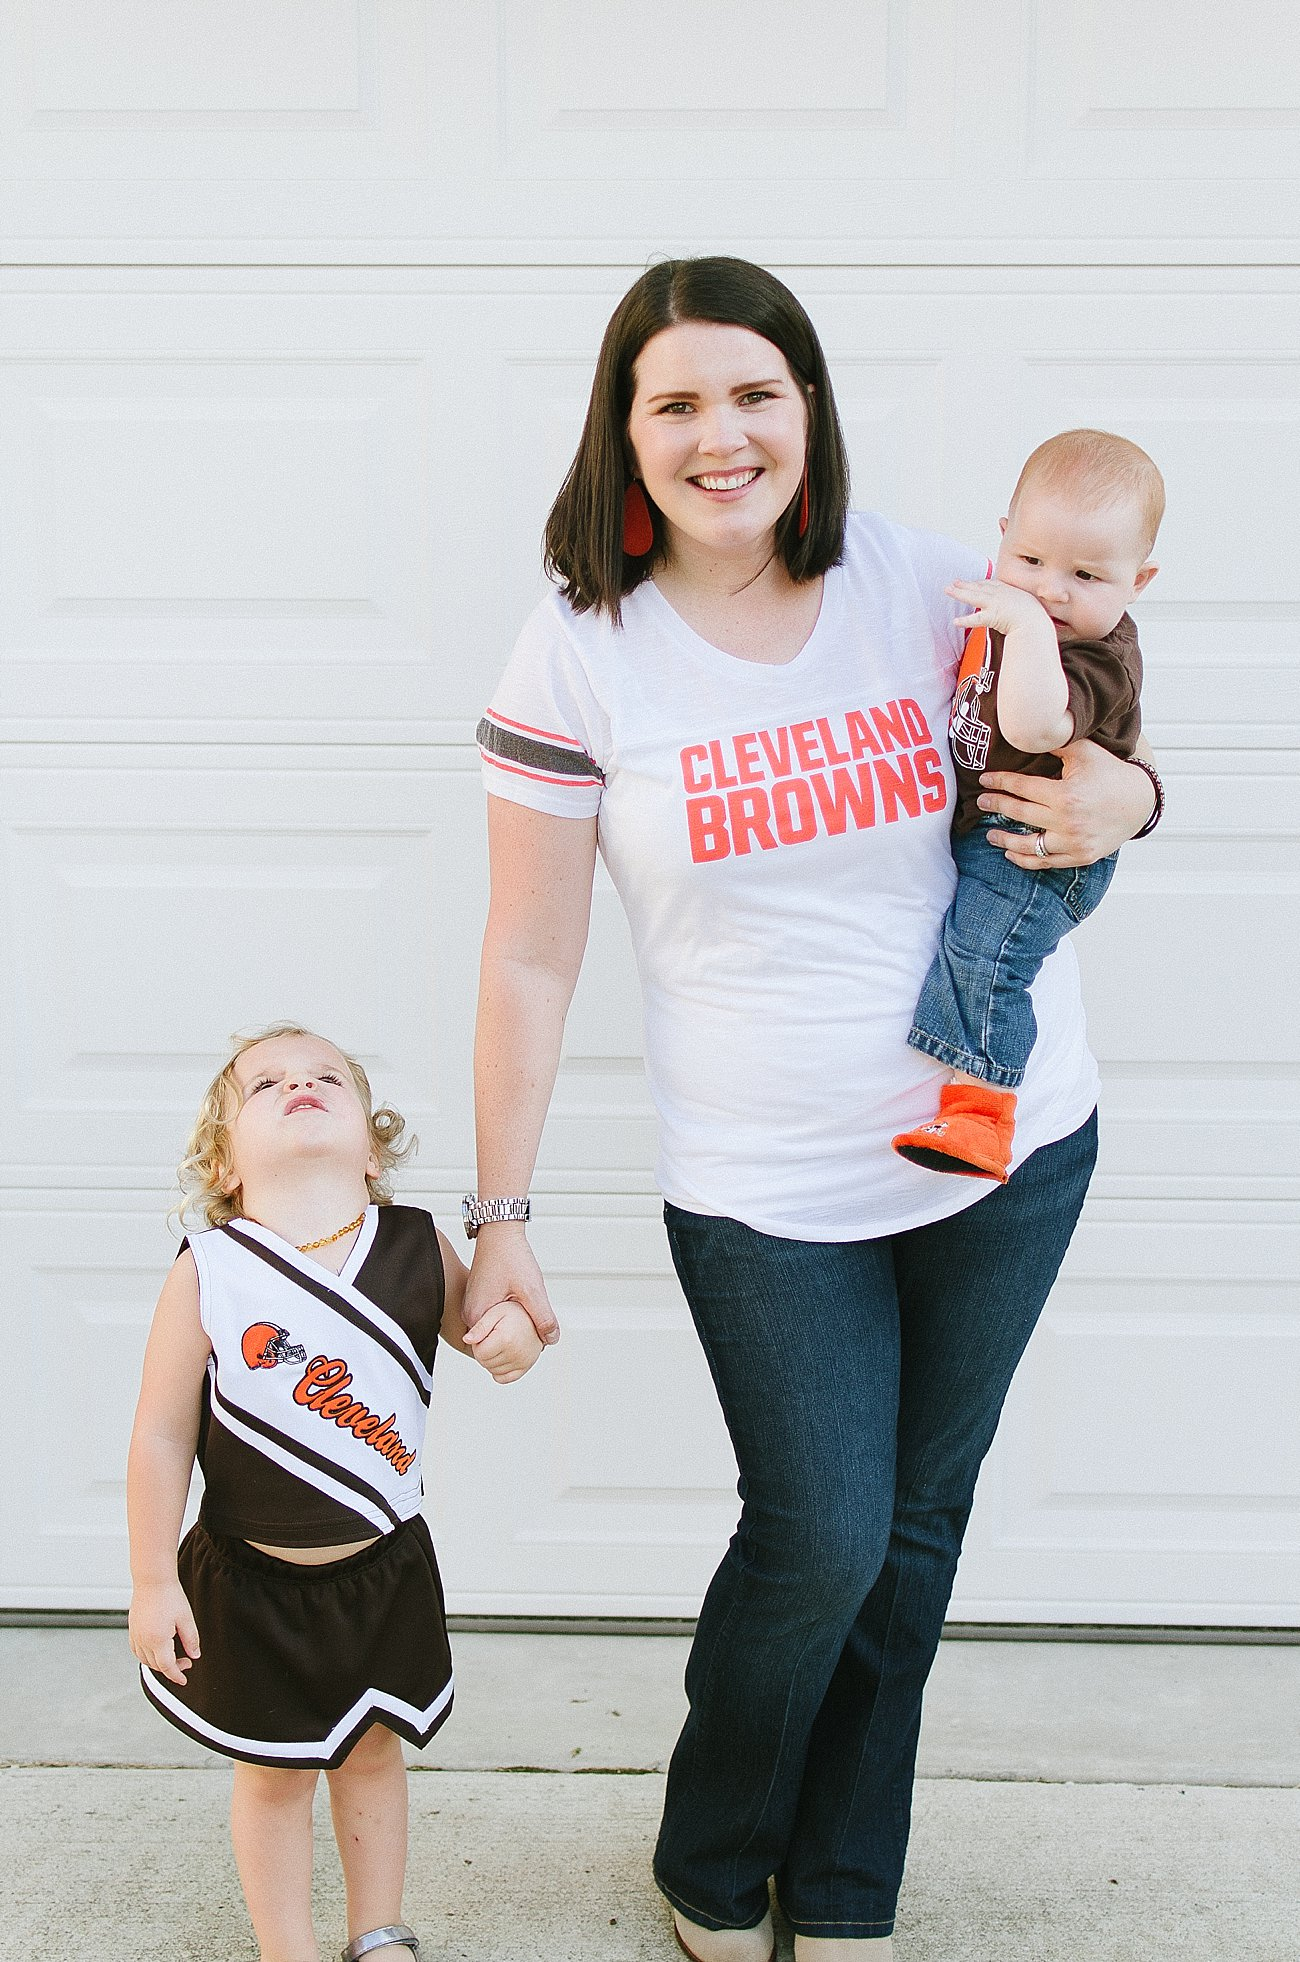 Cleveland Browns NFL Fan Style #NFLfanstyle #cg #ad (3)